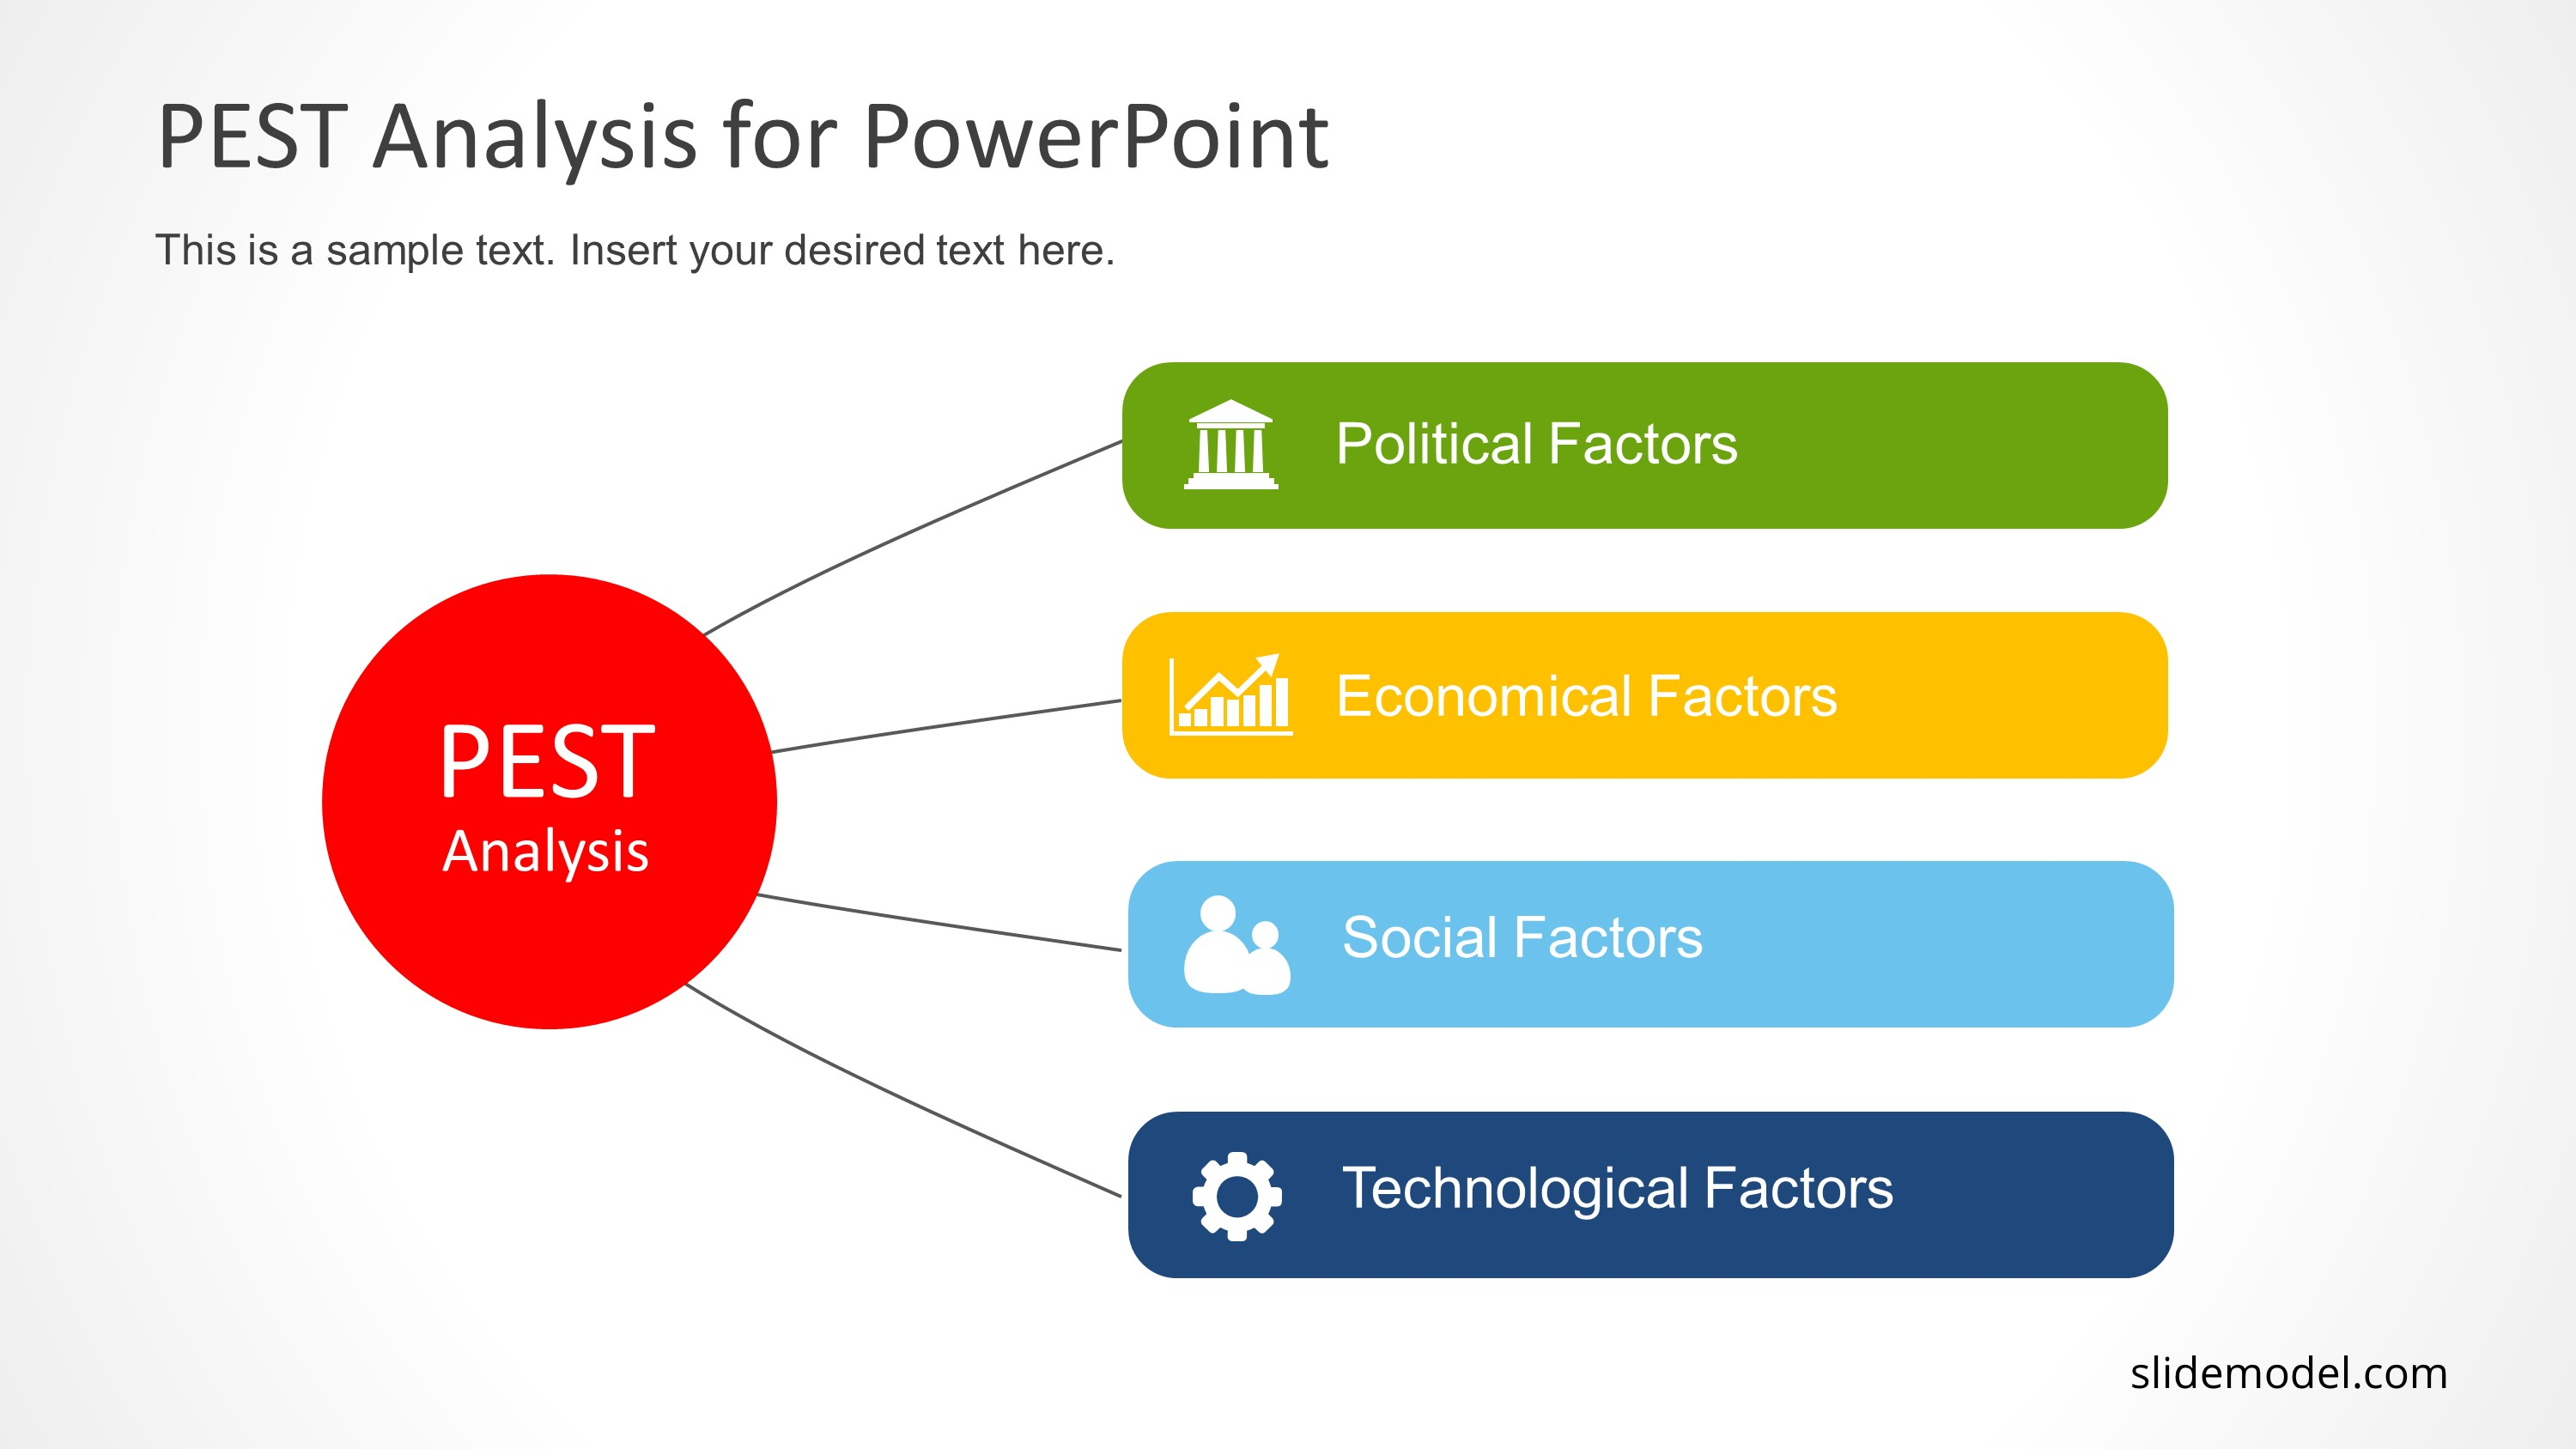 PPT Template for PEST Analysis